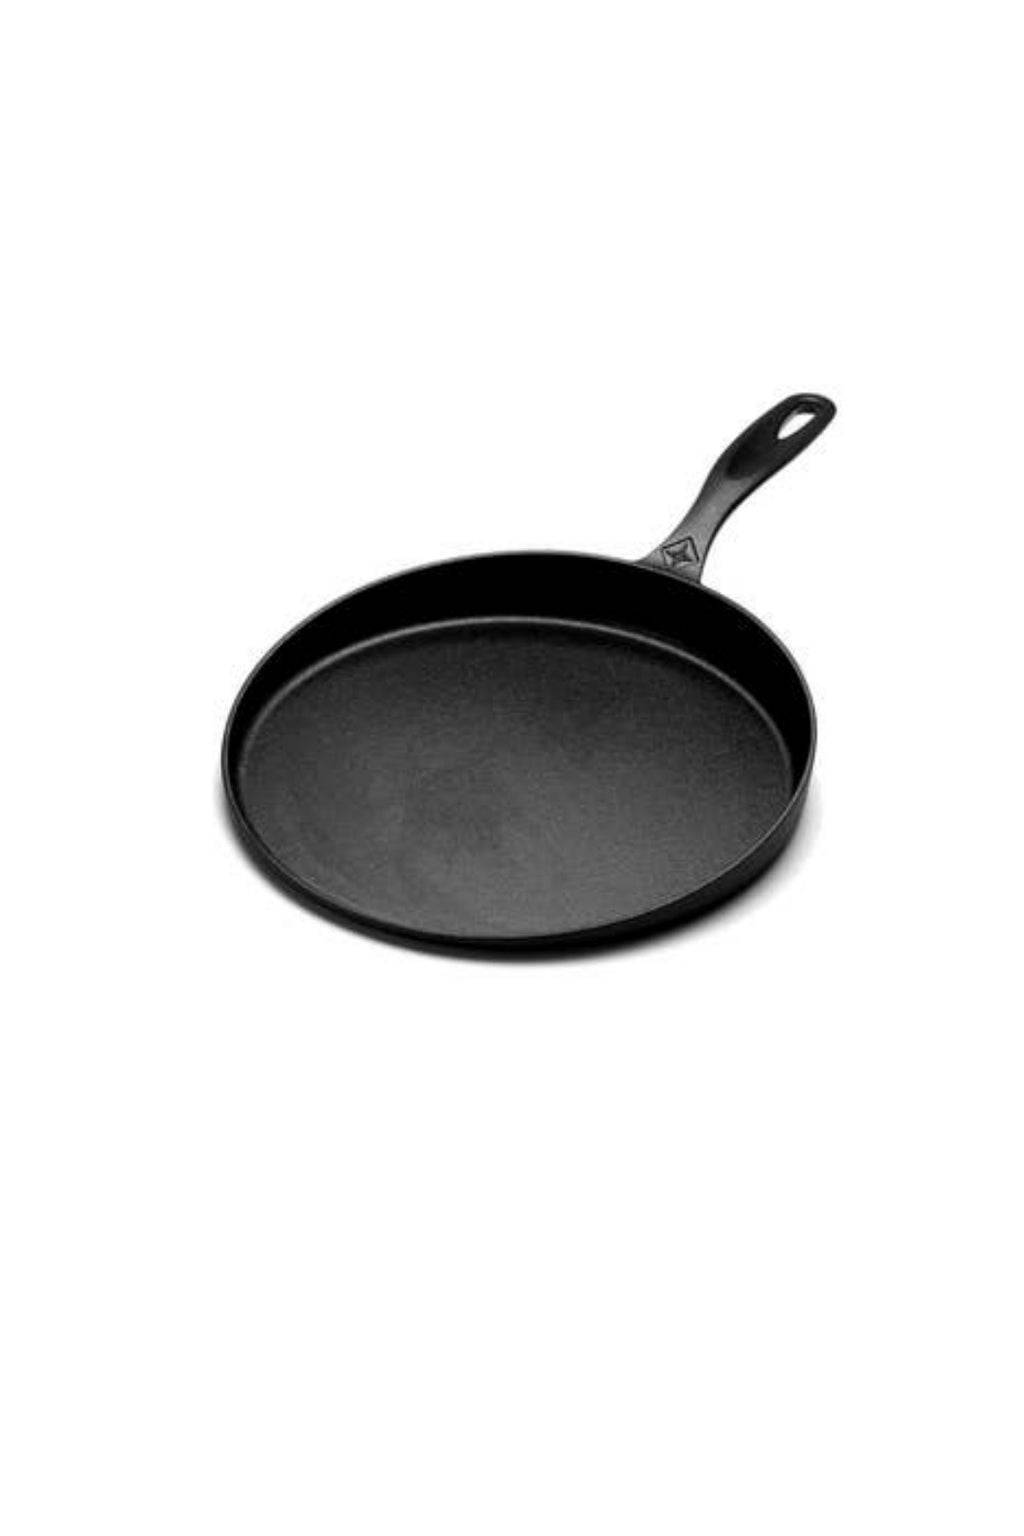 Barebones Living Cast Iron Flat Pan